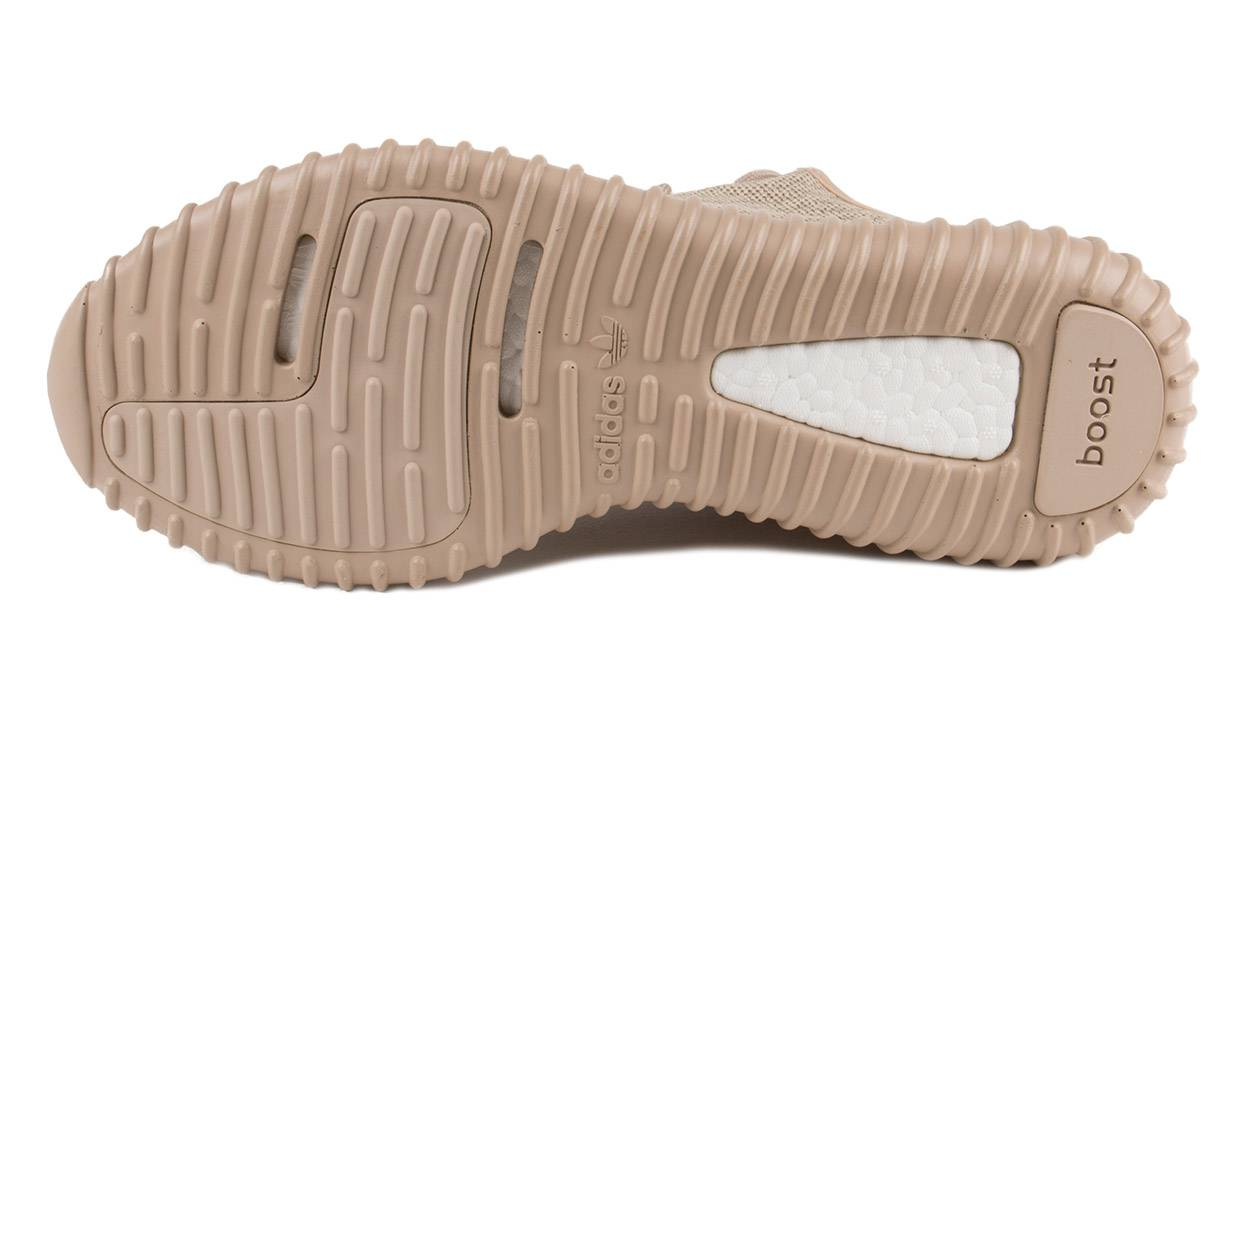 Cheap Adidas Yeezy Boost by Kanye West Cheap Adidas Cheap Adidas NO